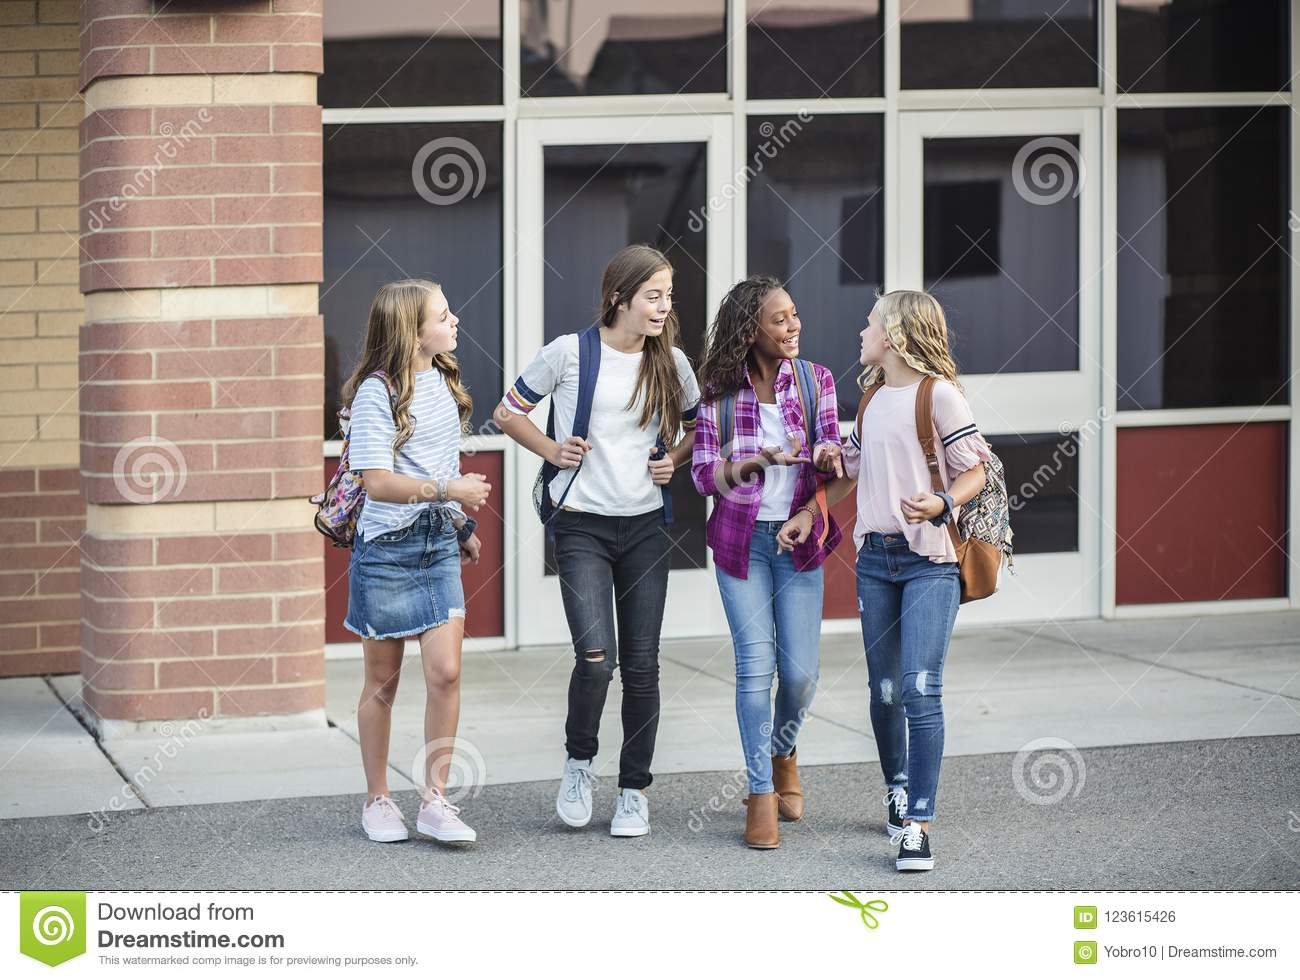 Teen Girls Leaving School Talking And Walking Together